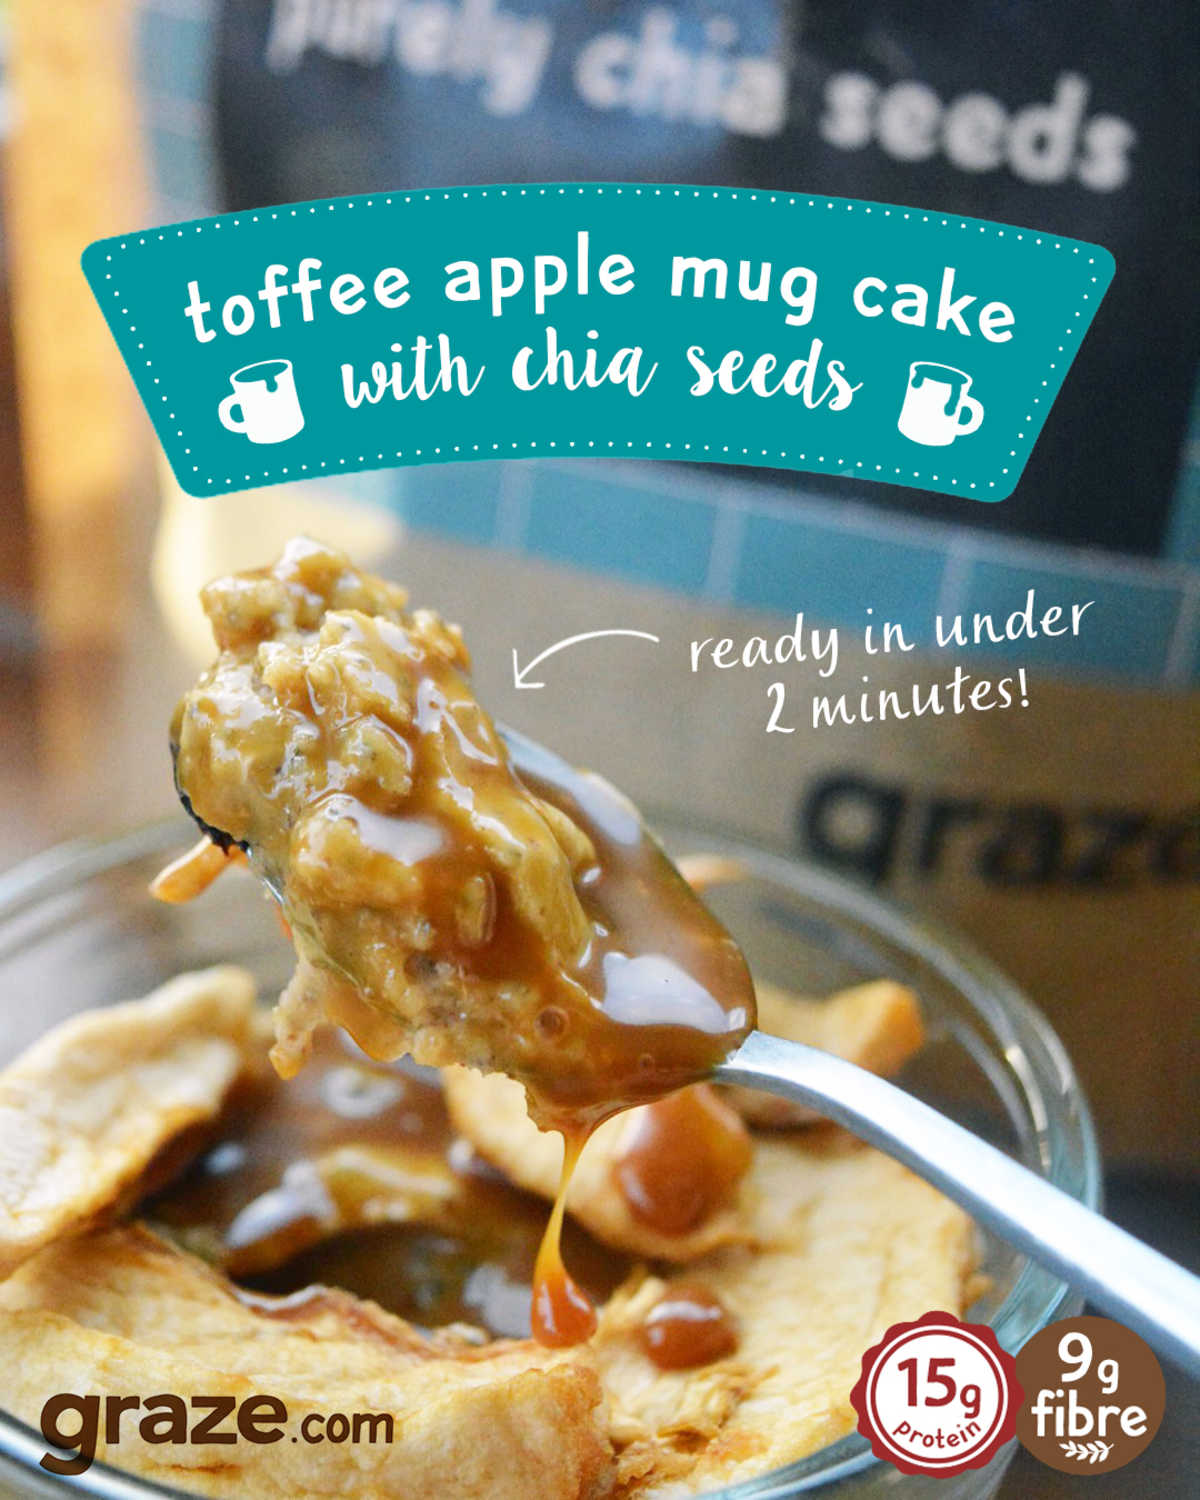 toffee apple mug cake